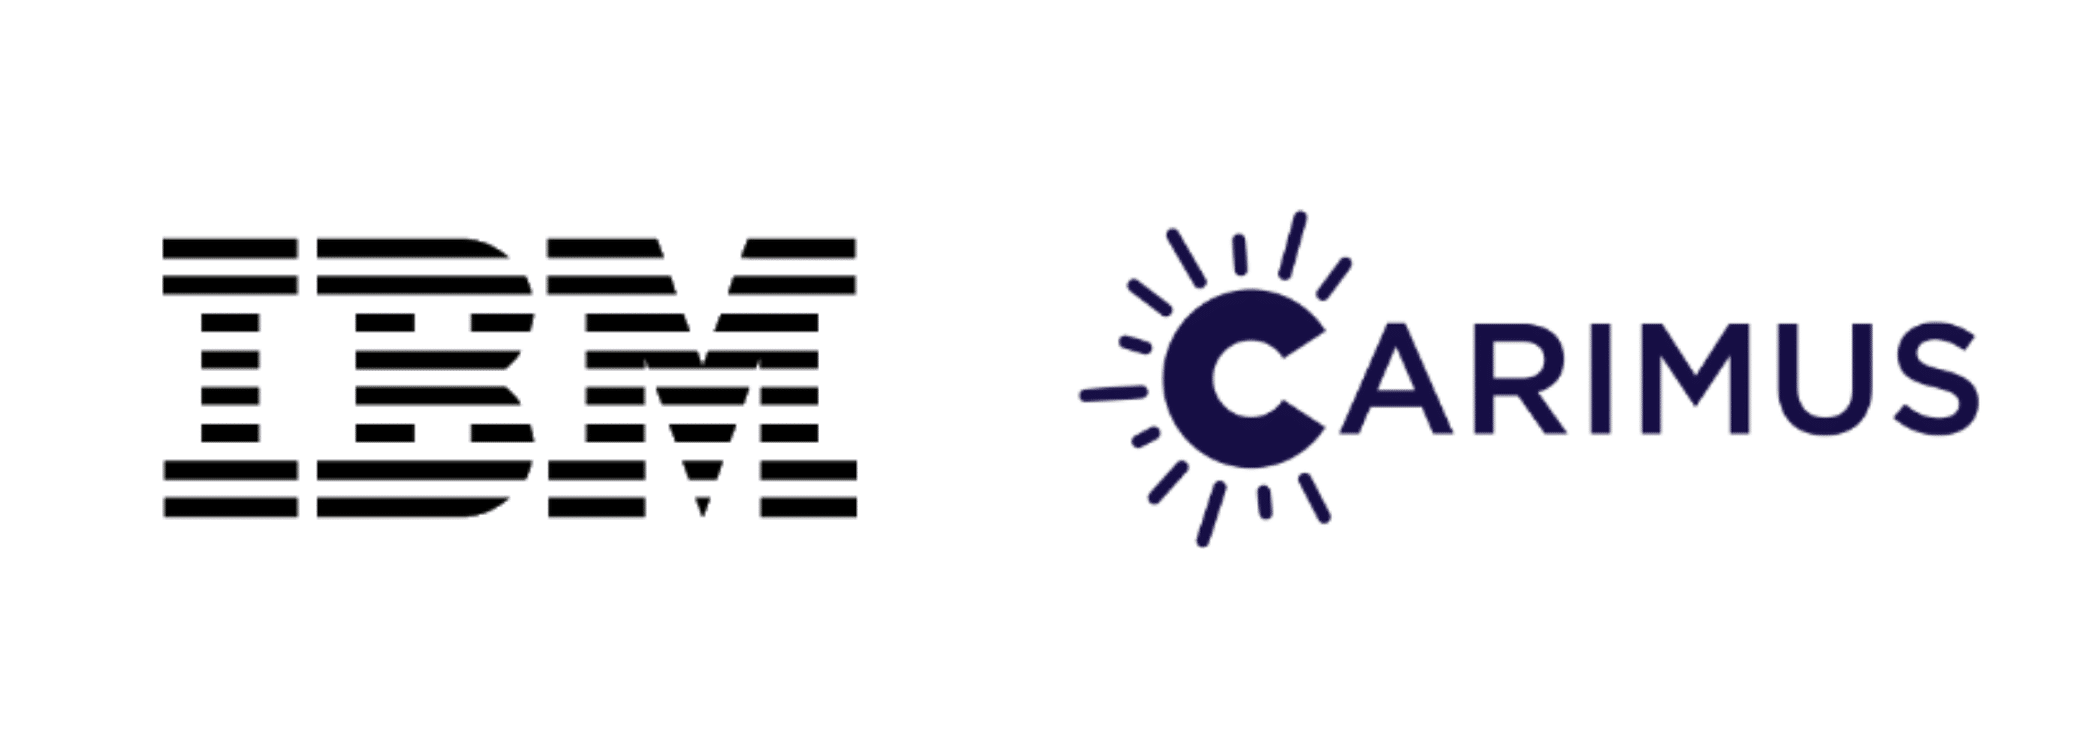 IBM and Carimus are champion partners